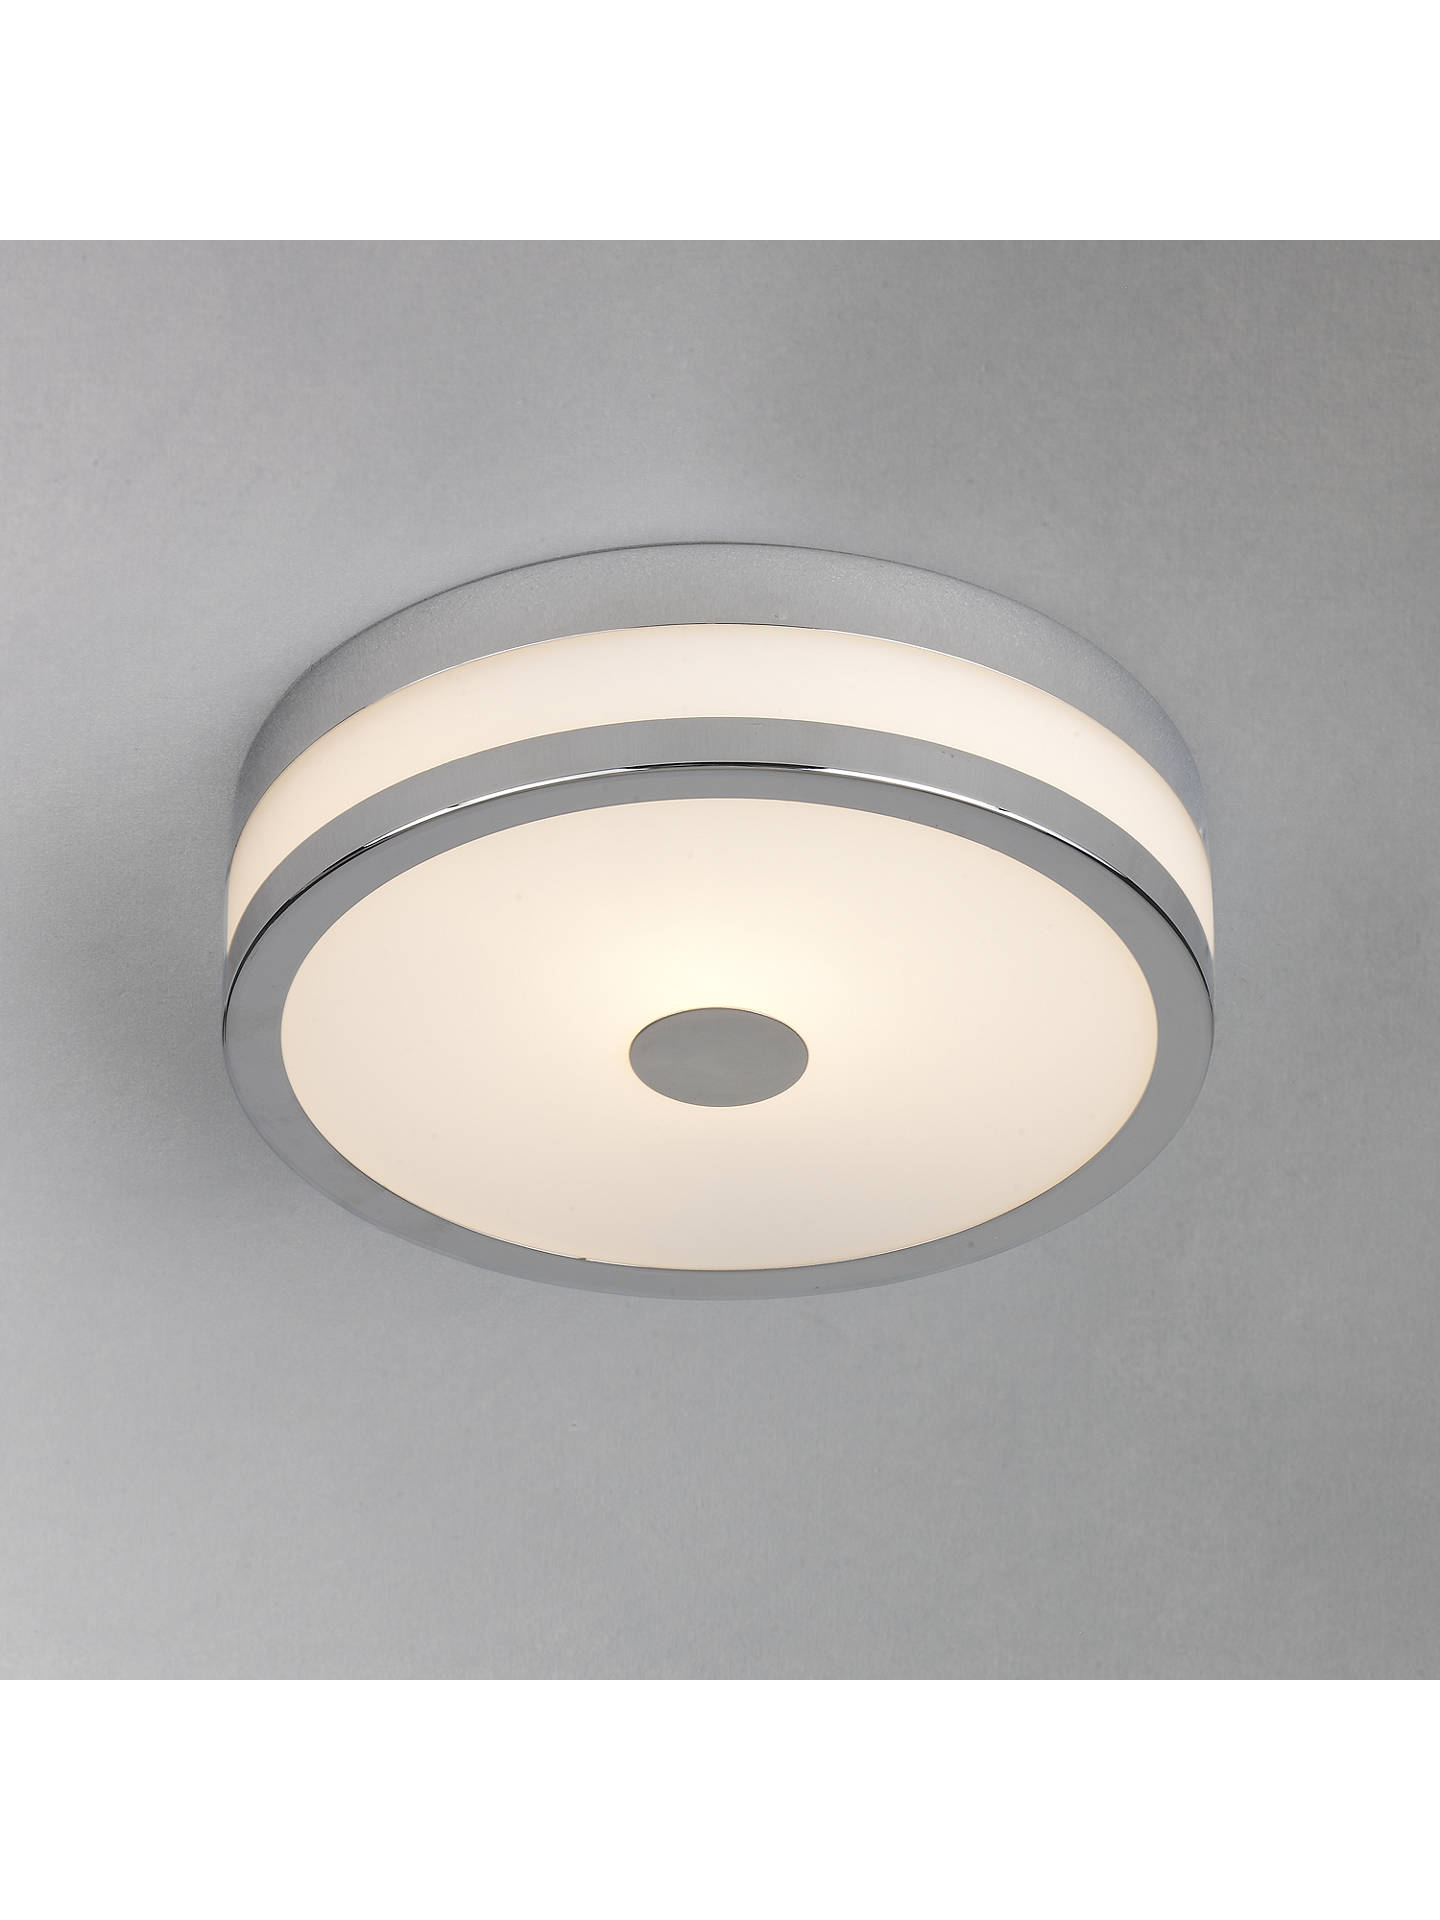 John Lewis Partners Shiko Bathroom Ceiling Light Online At Johnlewis